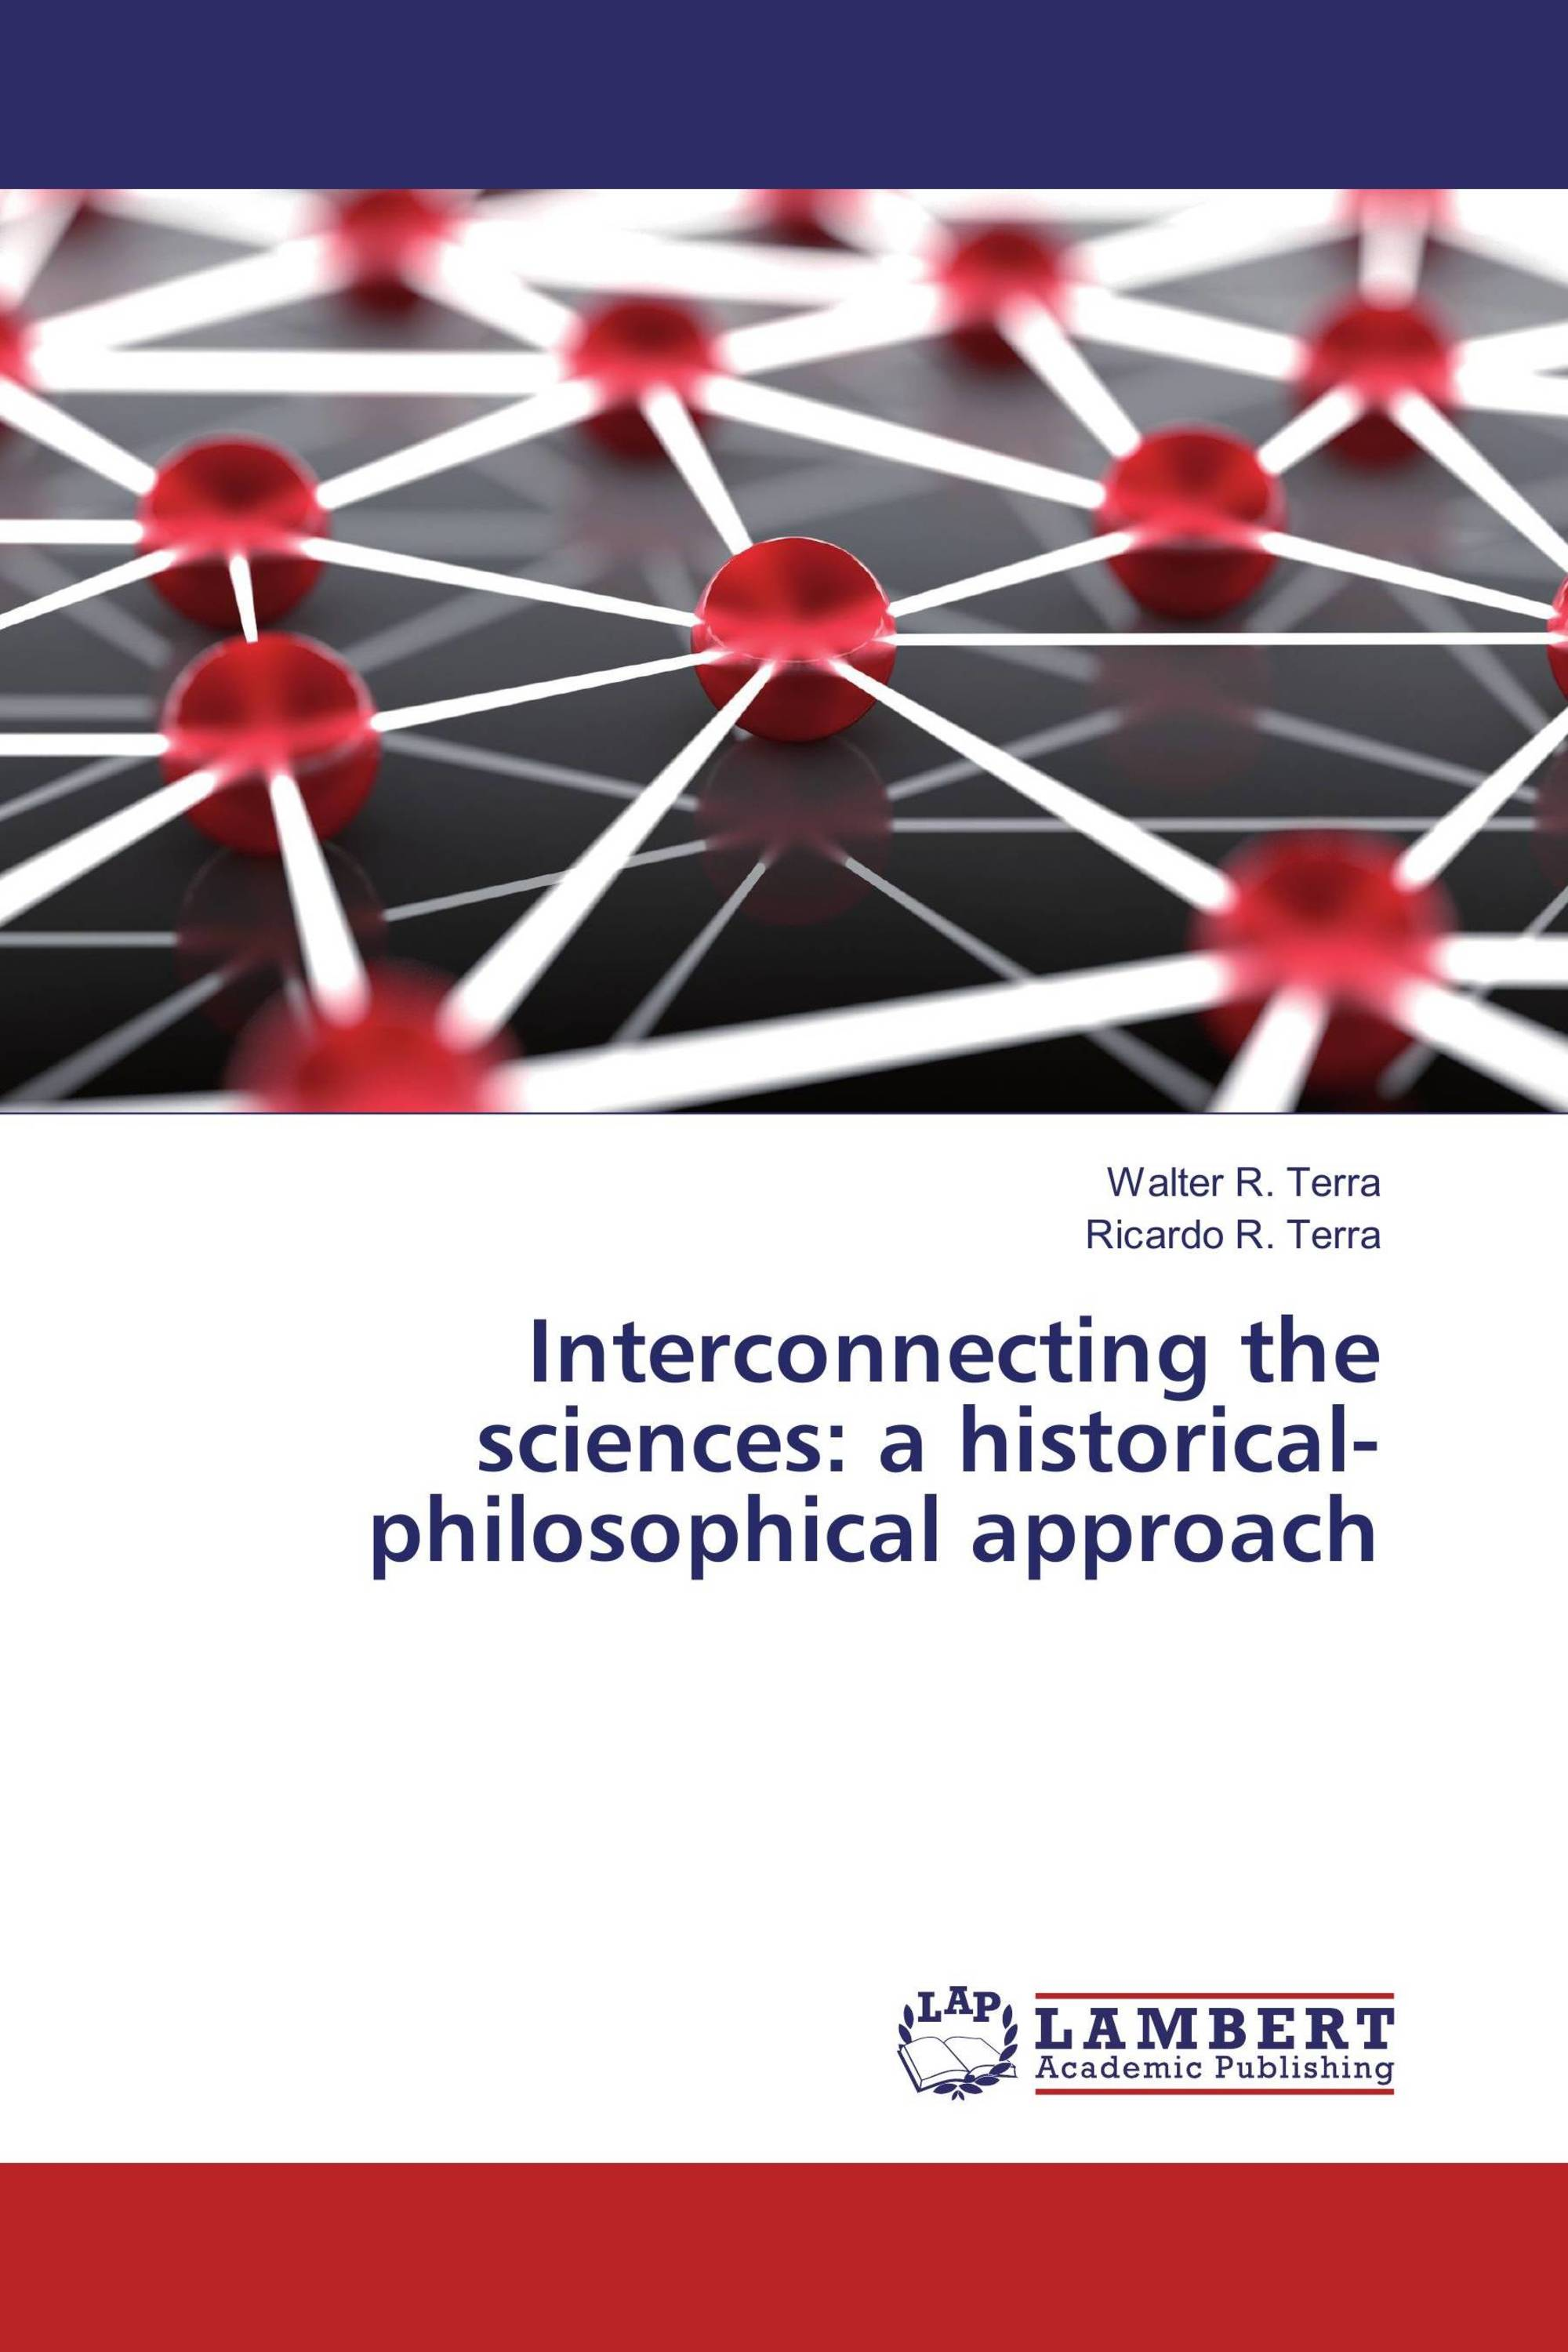 Interconnecting the sciences: a historical-philosophical approach